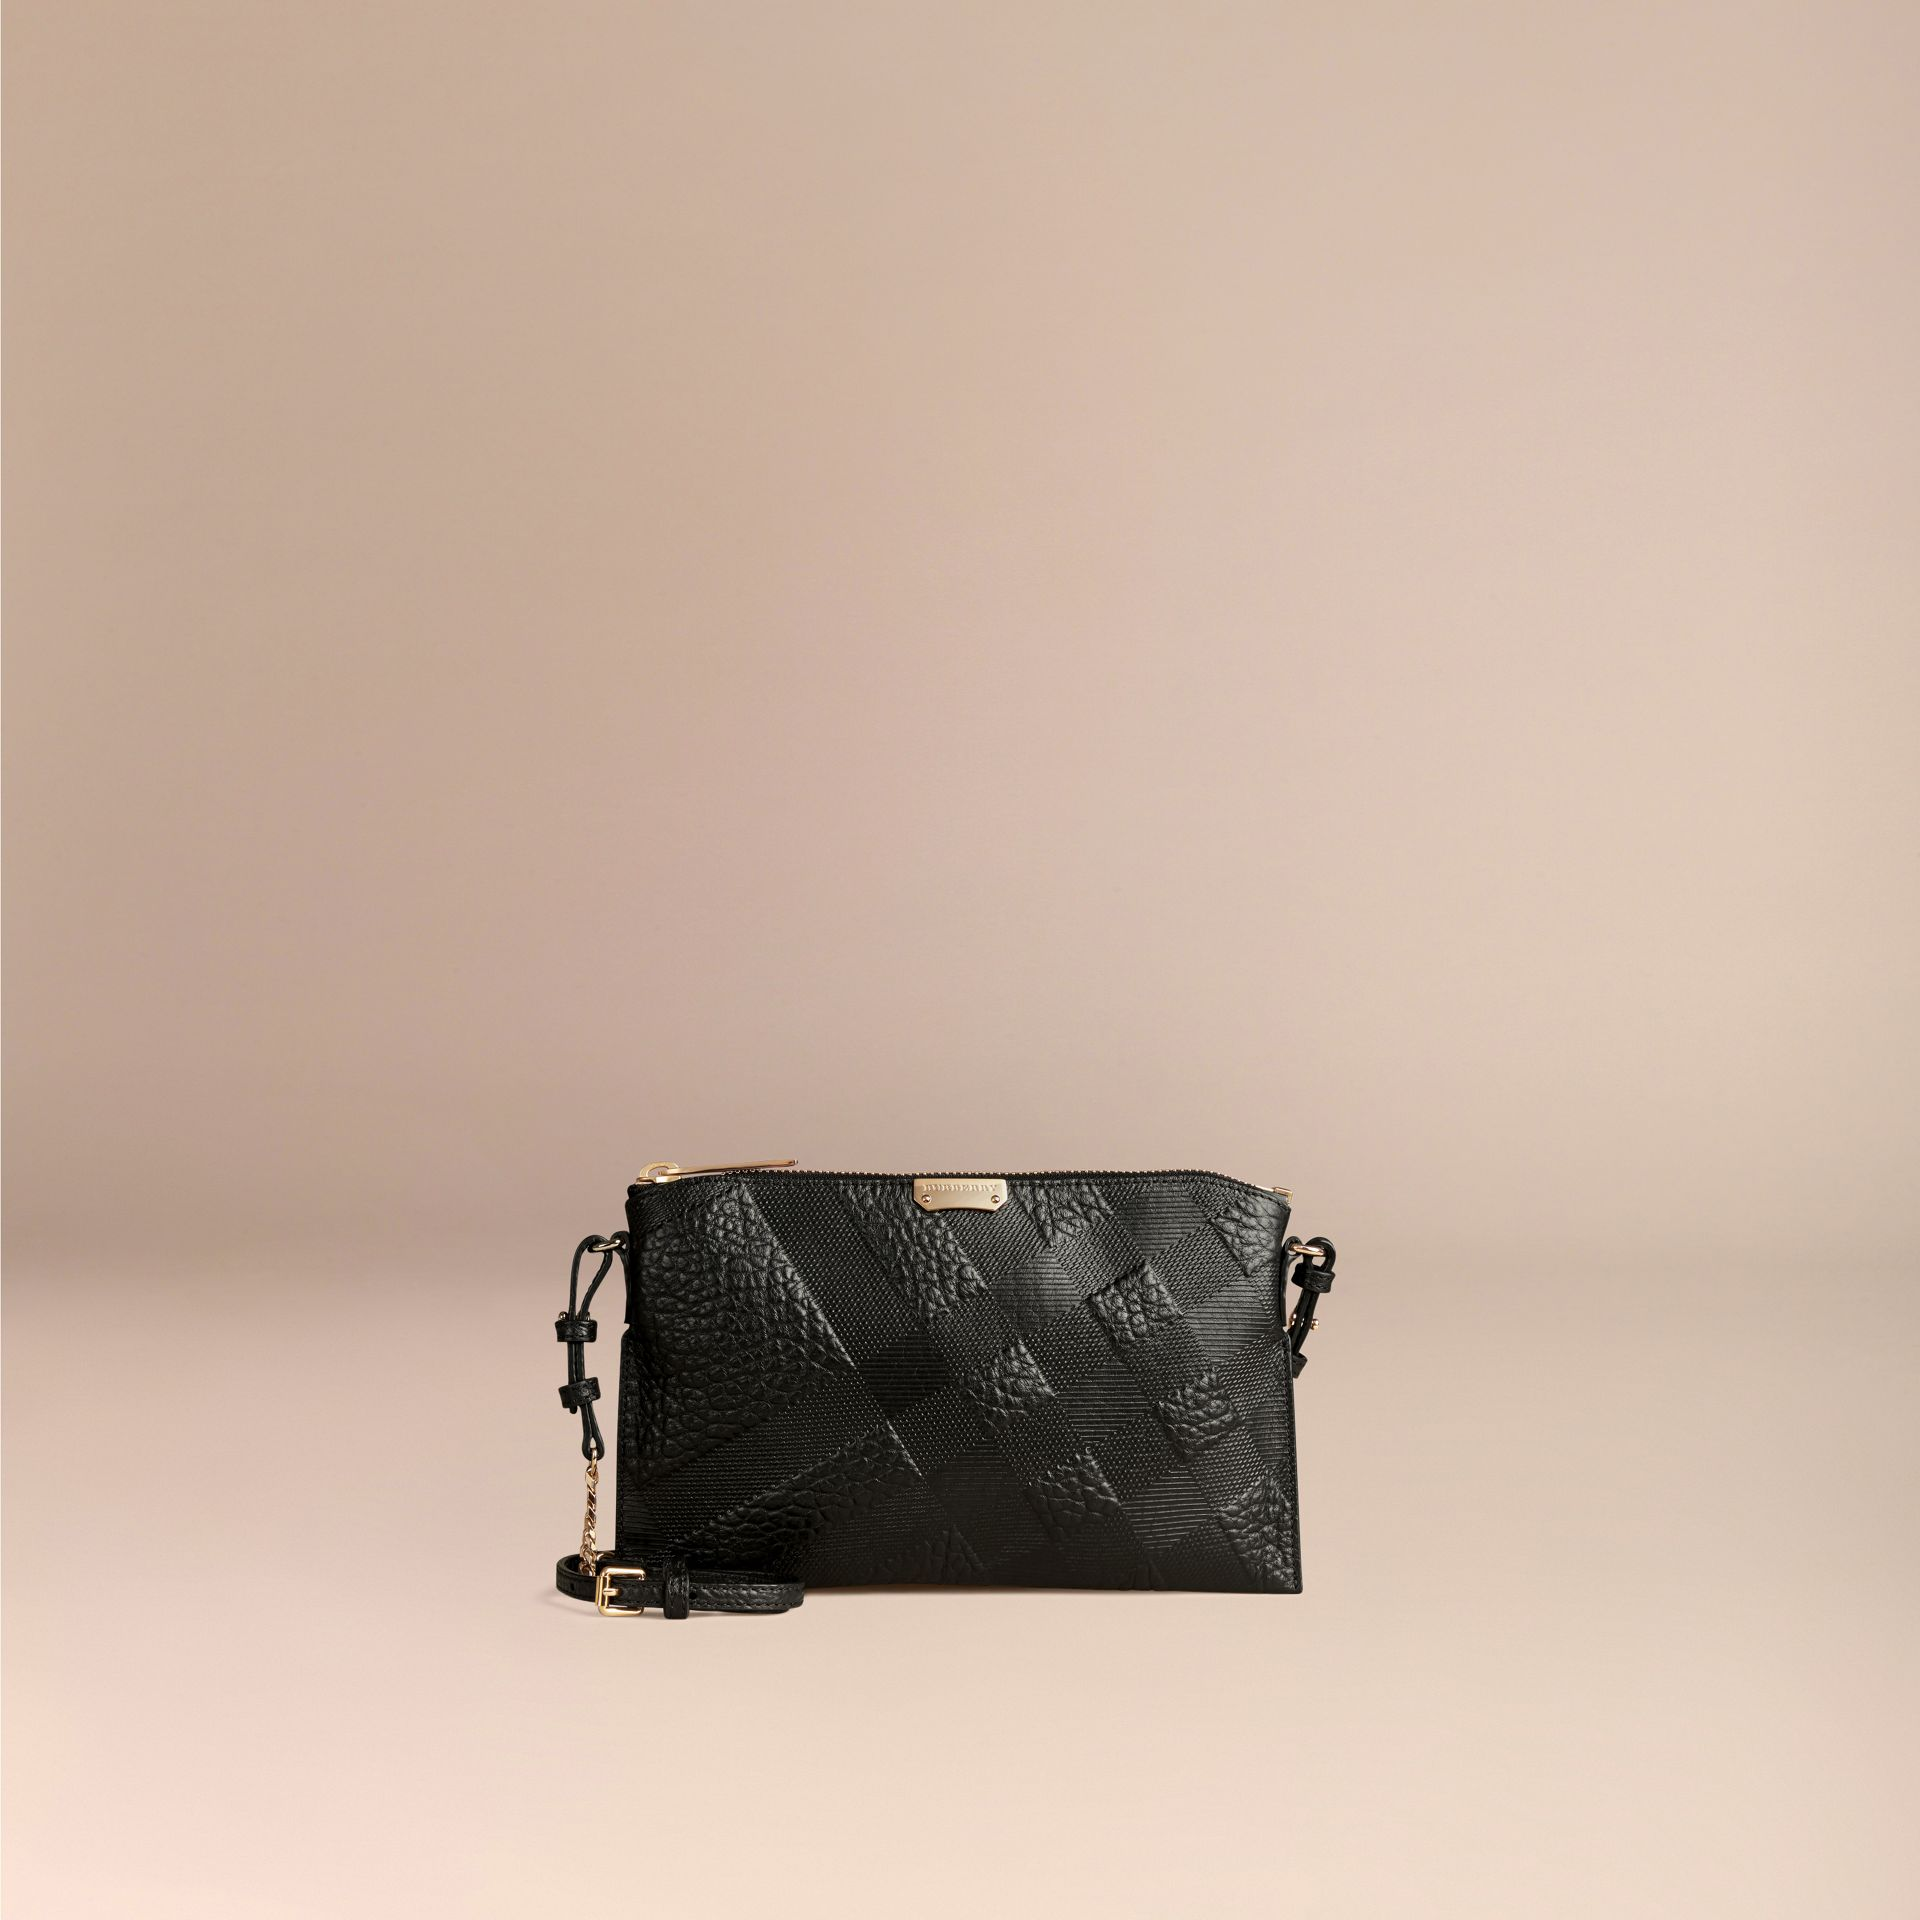 Black Check-embossed Leather Clutch Bag Black - gallery image 6